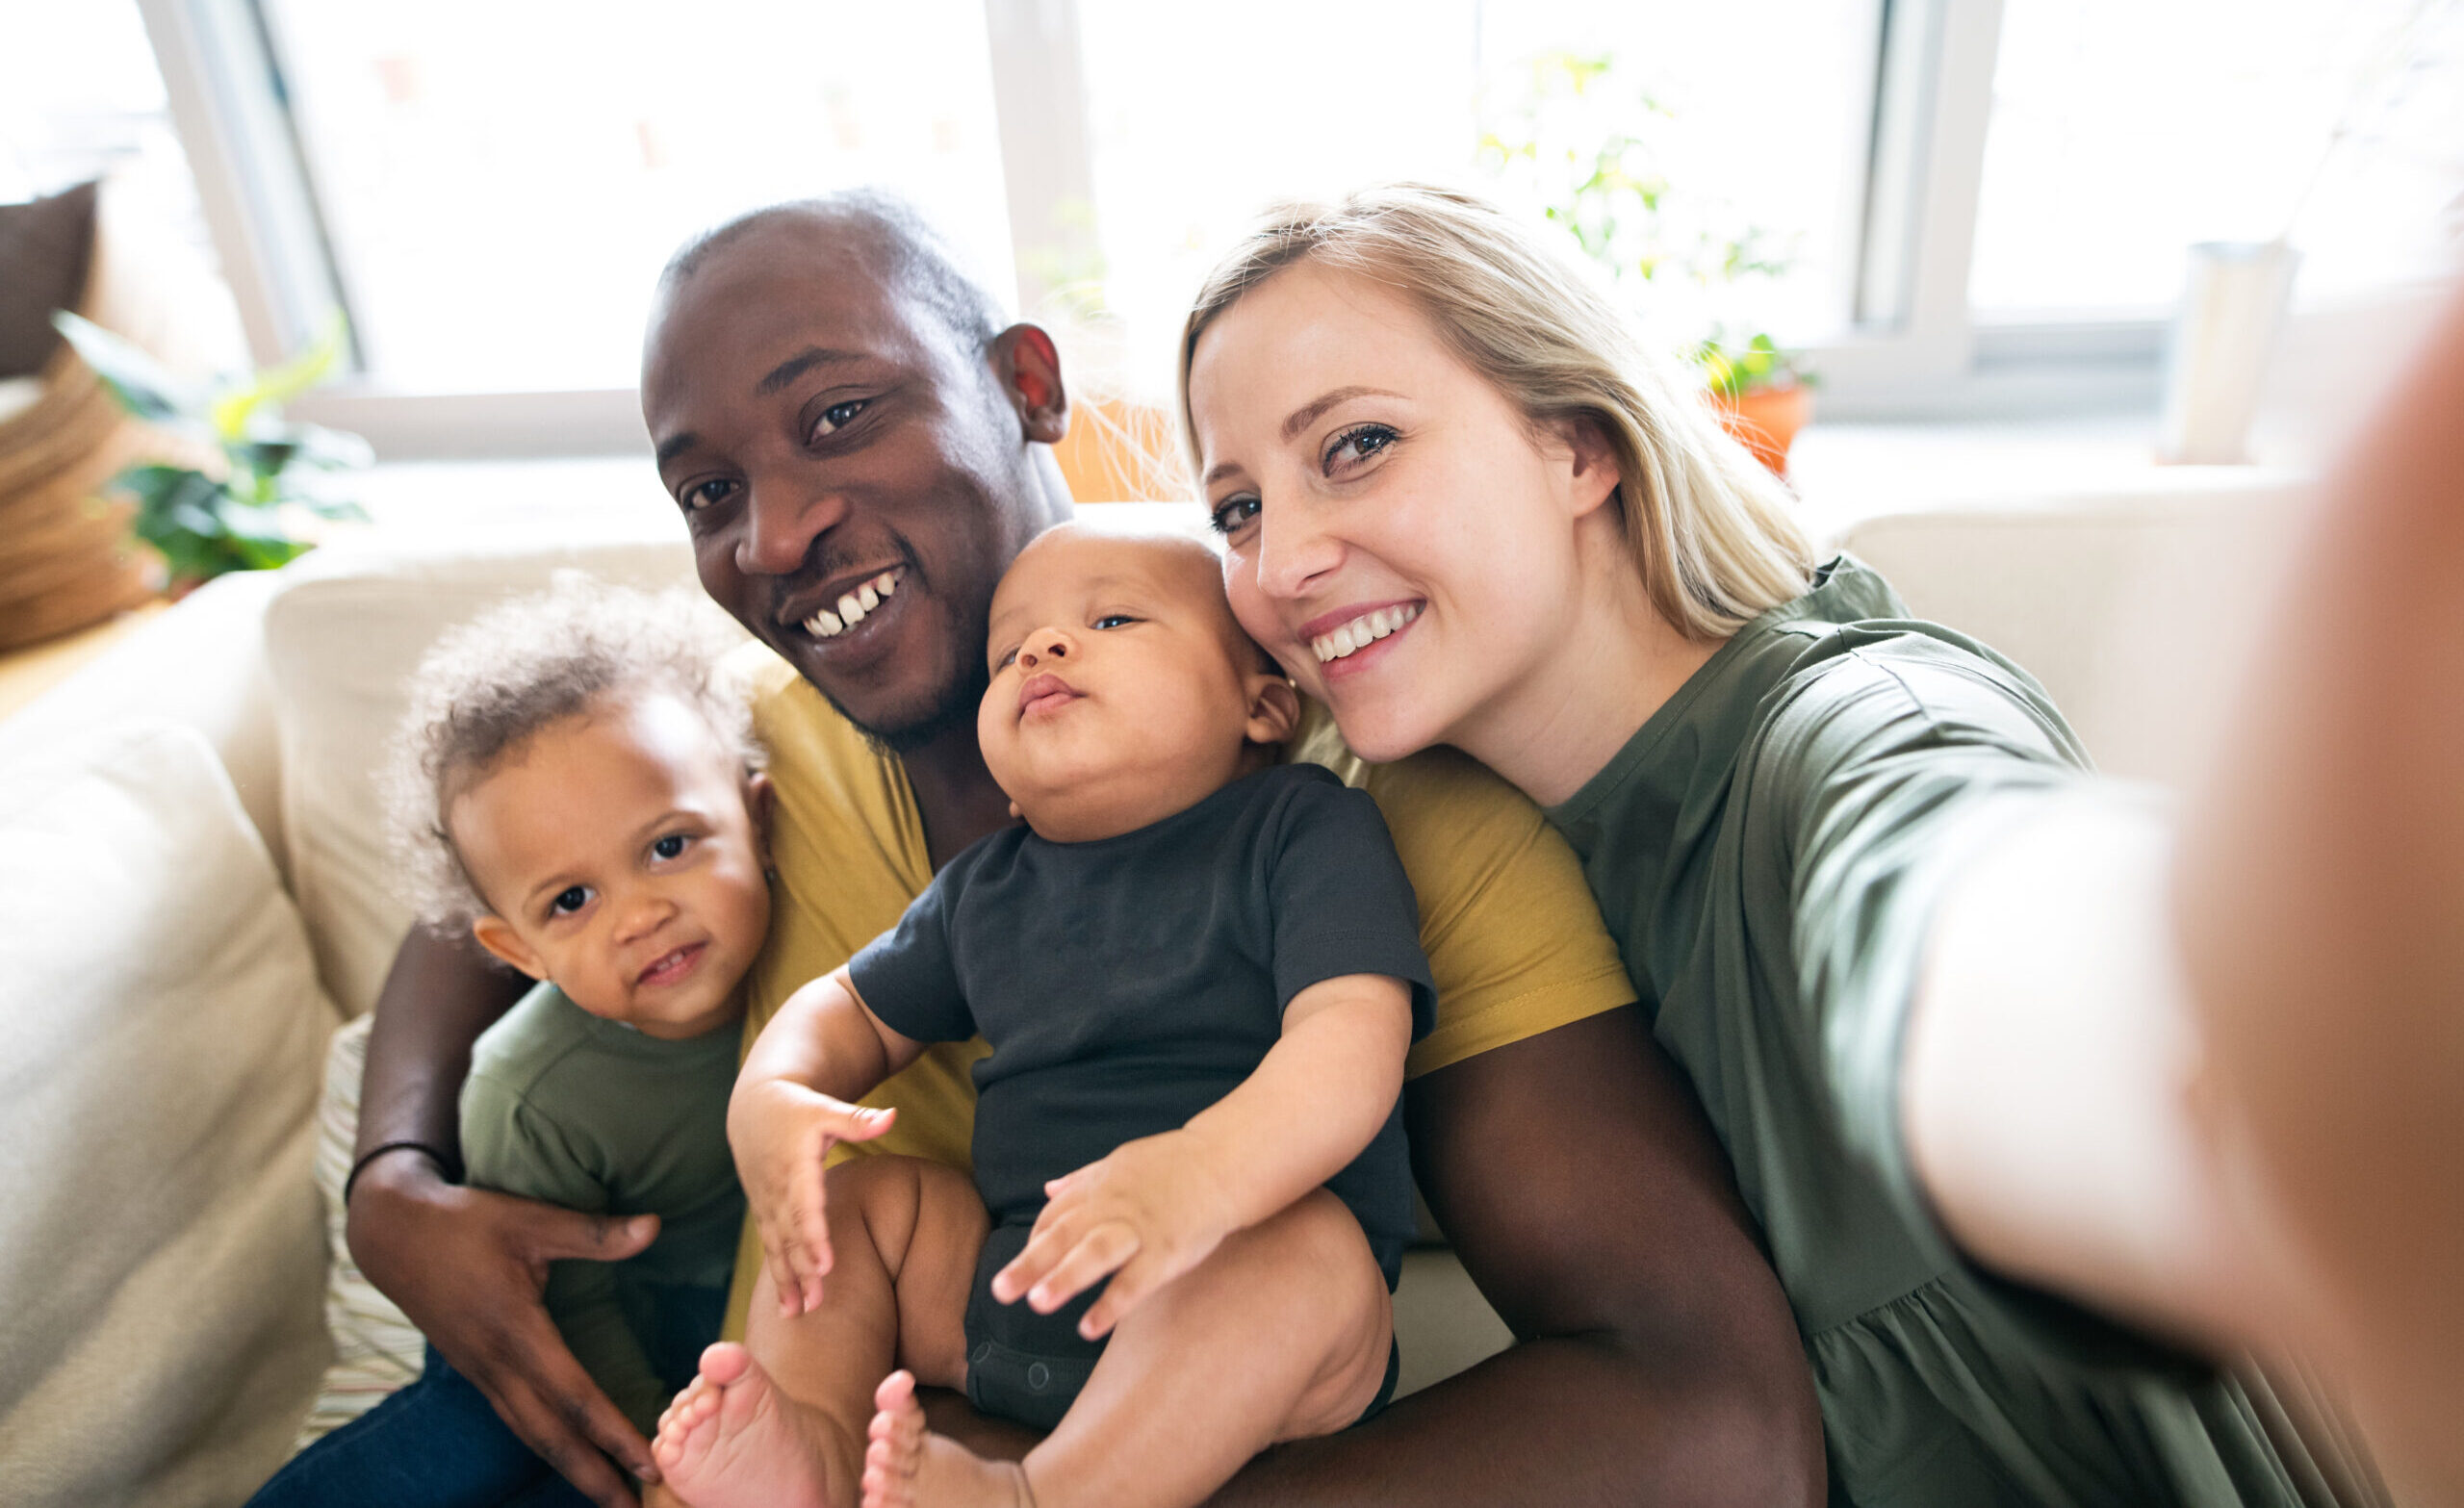 Young,Interracial,Family,With,Little,Children,Taking,Selfie.